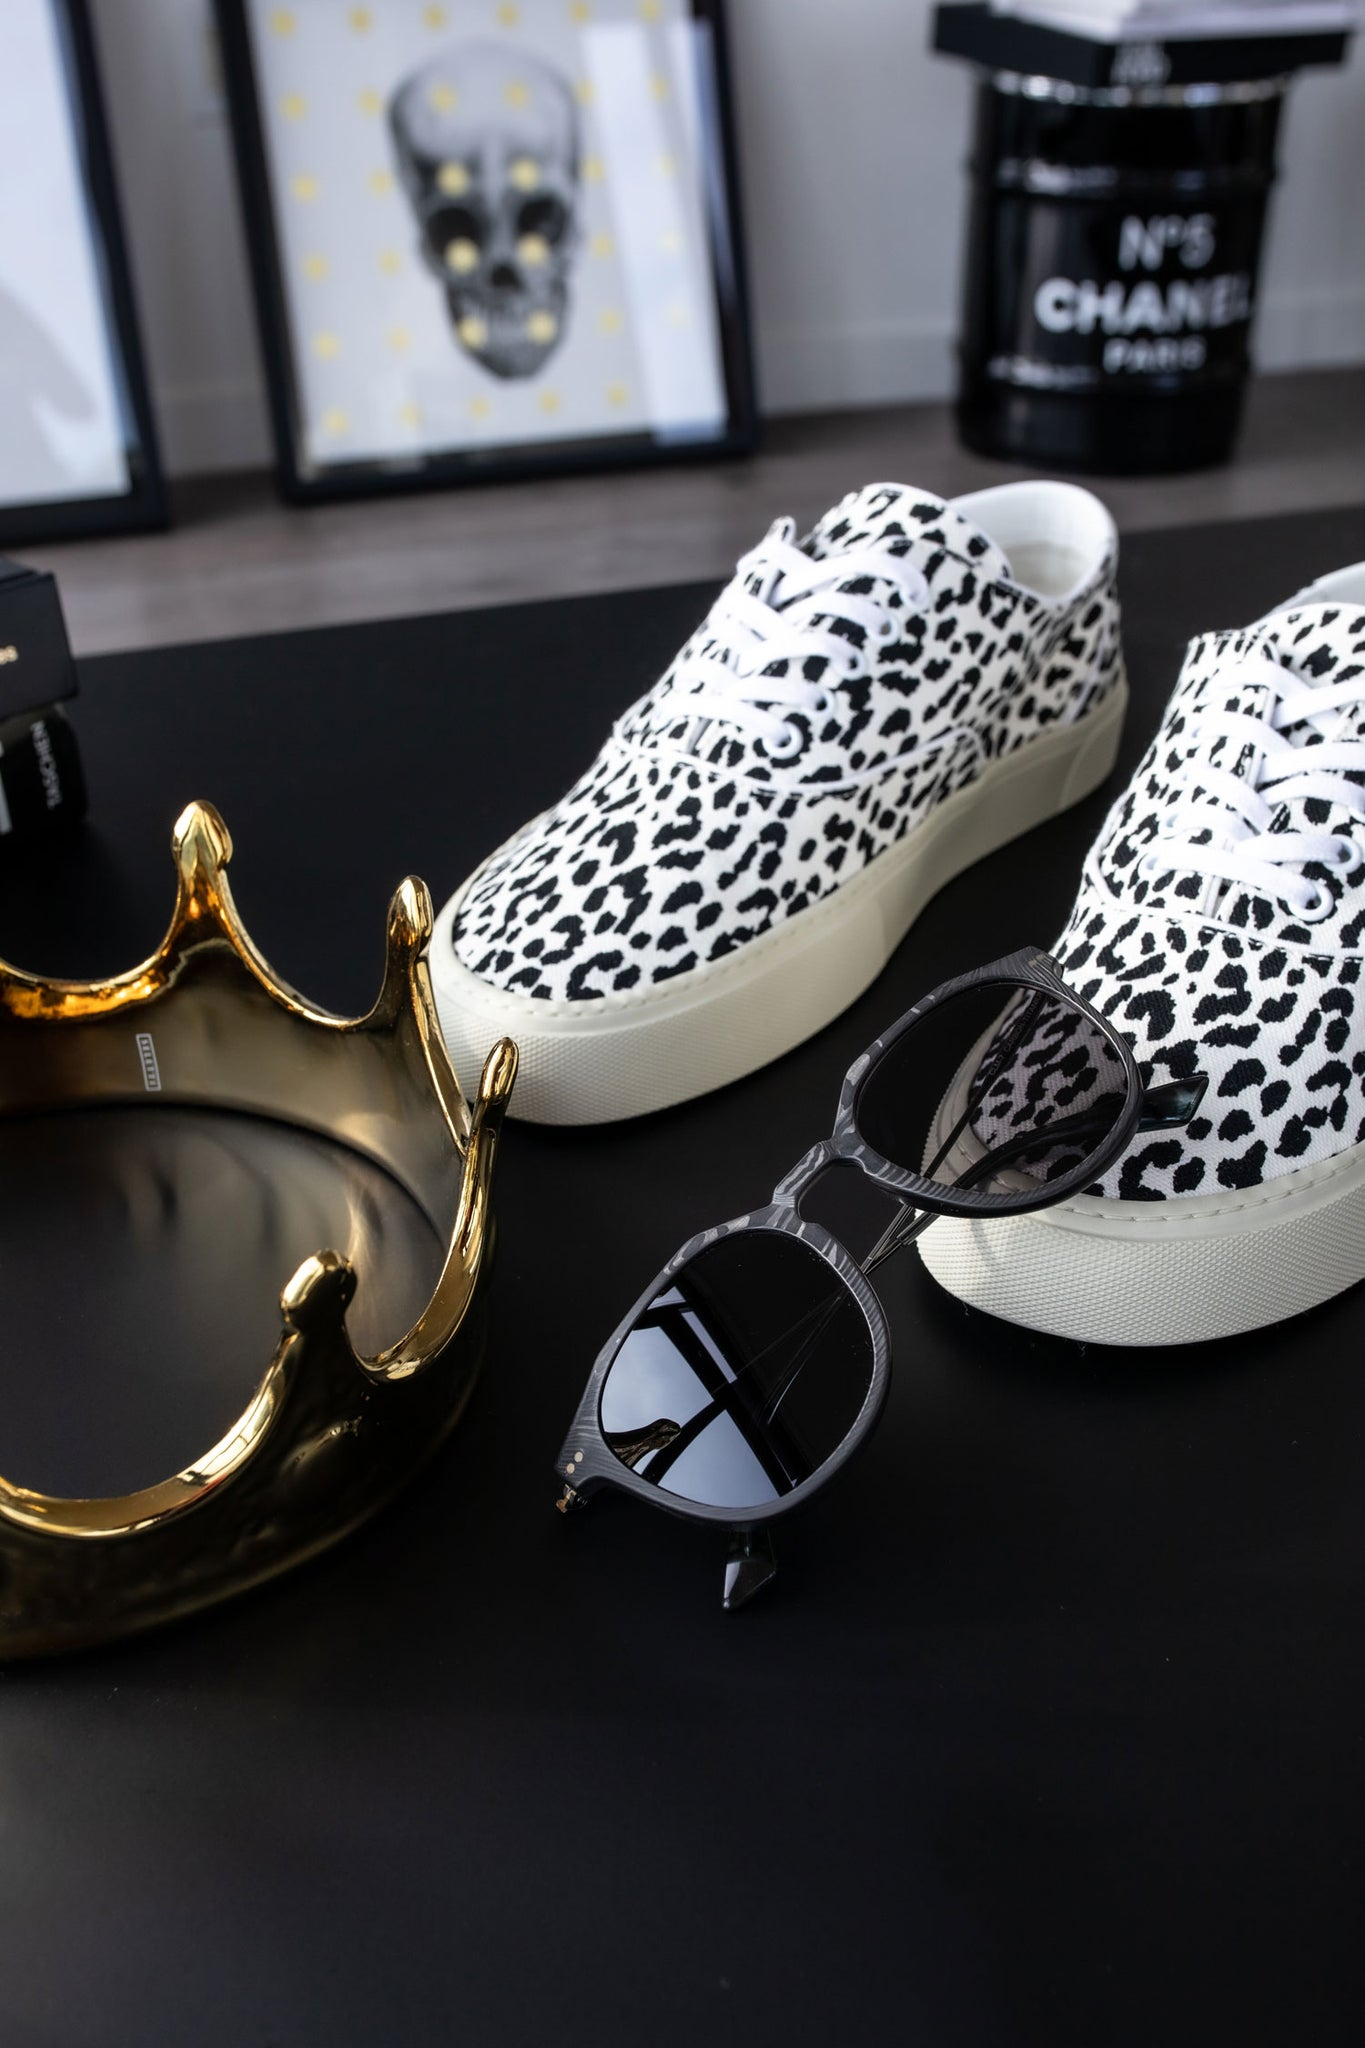 Saint Laurent Venice low top sneakers on table in DTLA with Roveri Eyewear CLM7 black on black by paid2shoot.